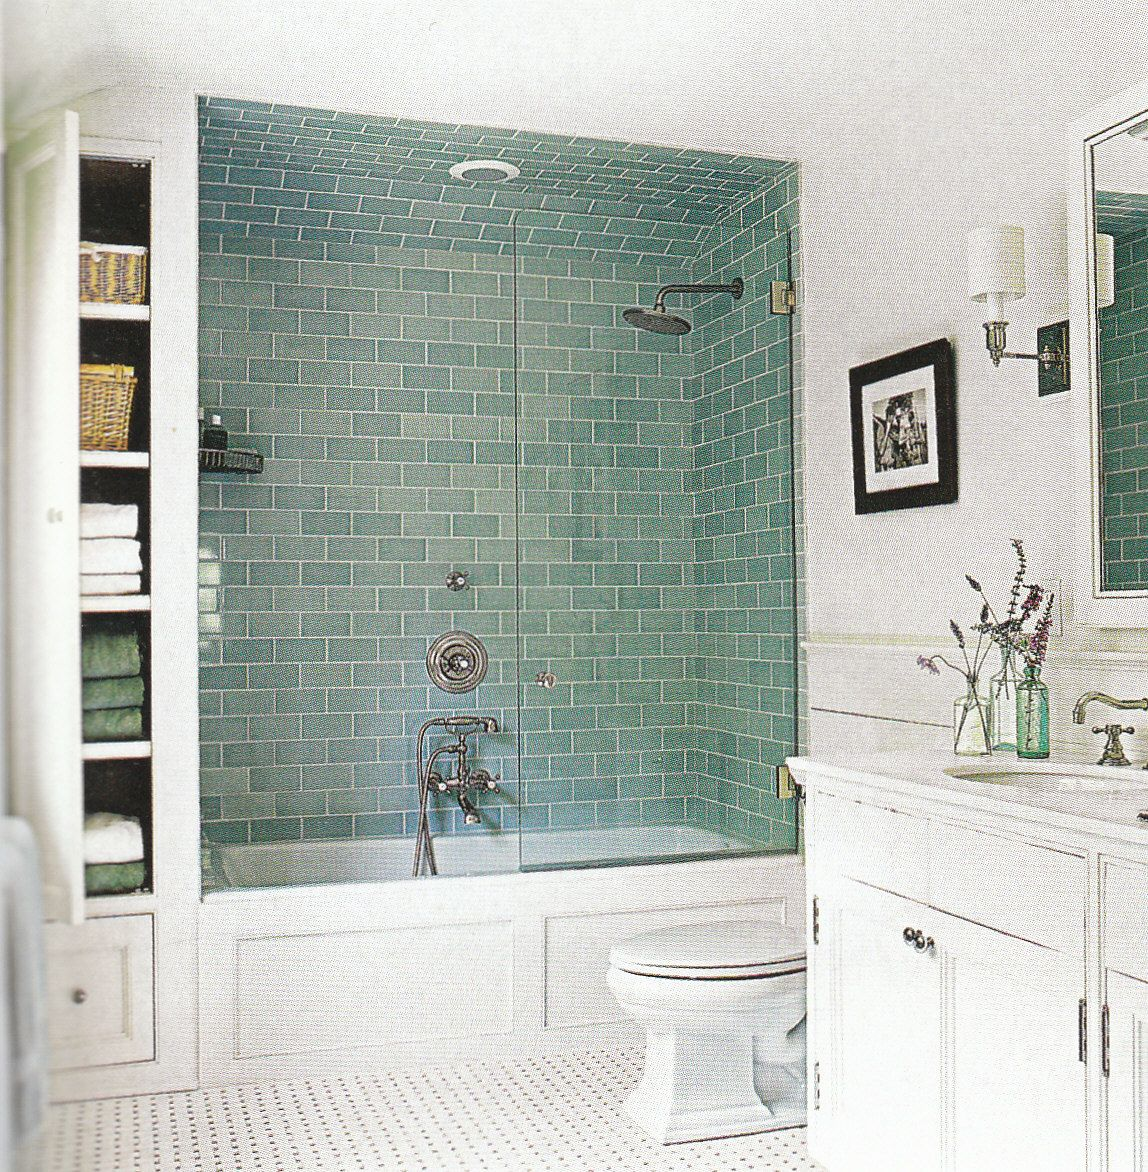 Bathroom Upgrade Ideas Blue Subway Tile With Bathtub Shower Combo In Bathroom With Bathtub Shower Bathroom Design Bathrooms Remodel Bathtub Shower Combo